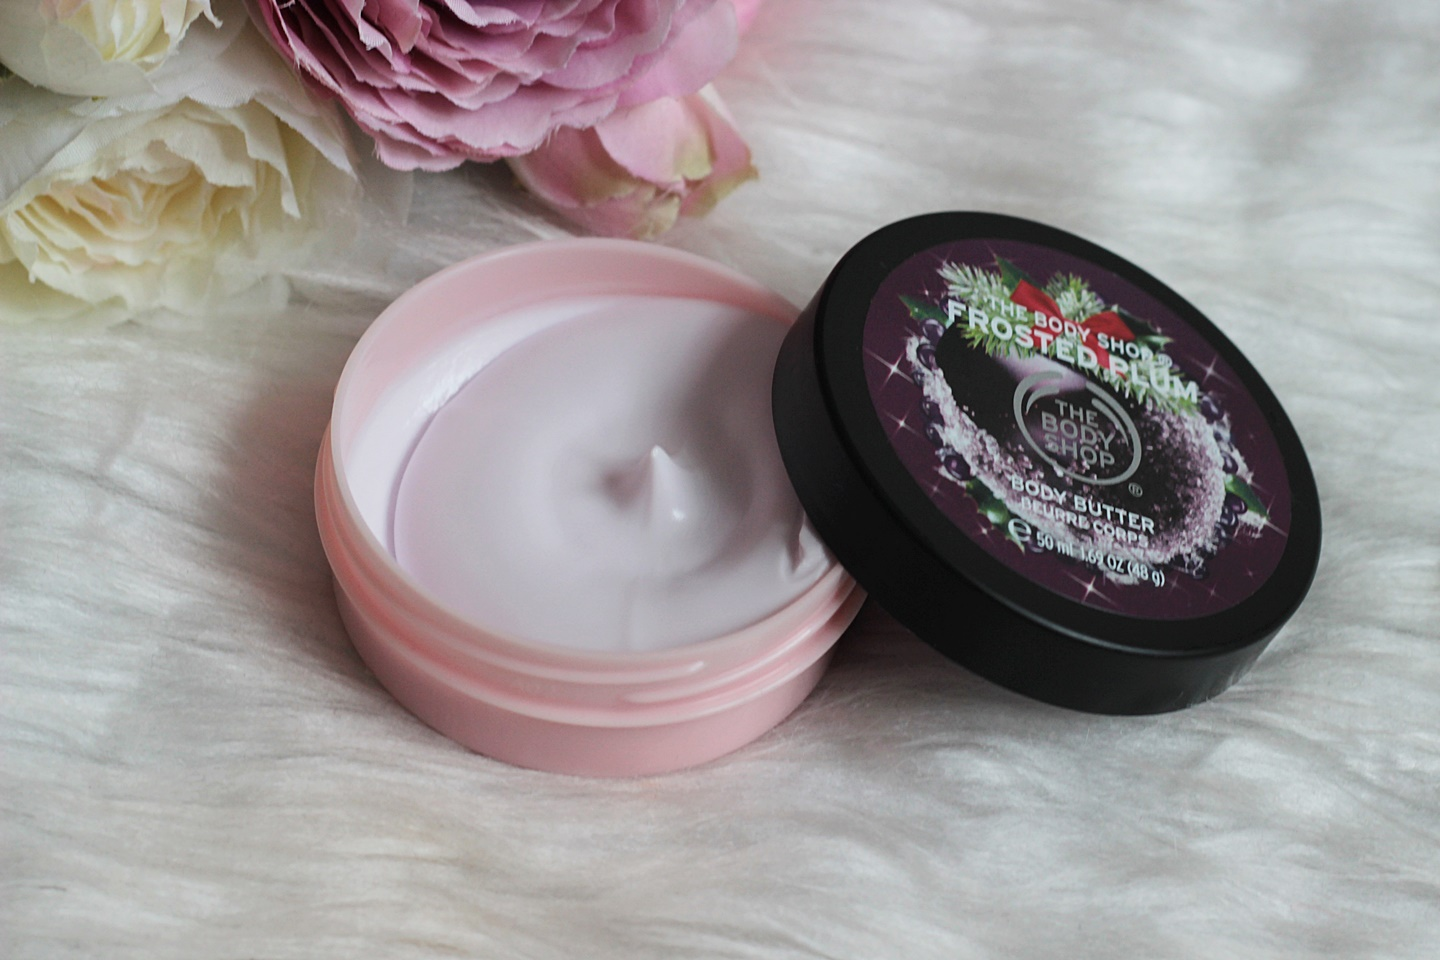 thebodyshop-frostedplum-bodybutter